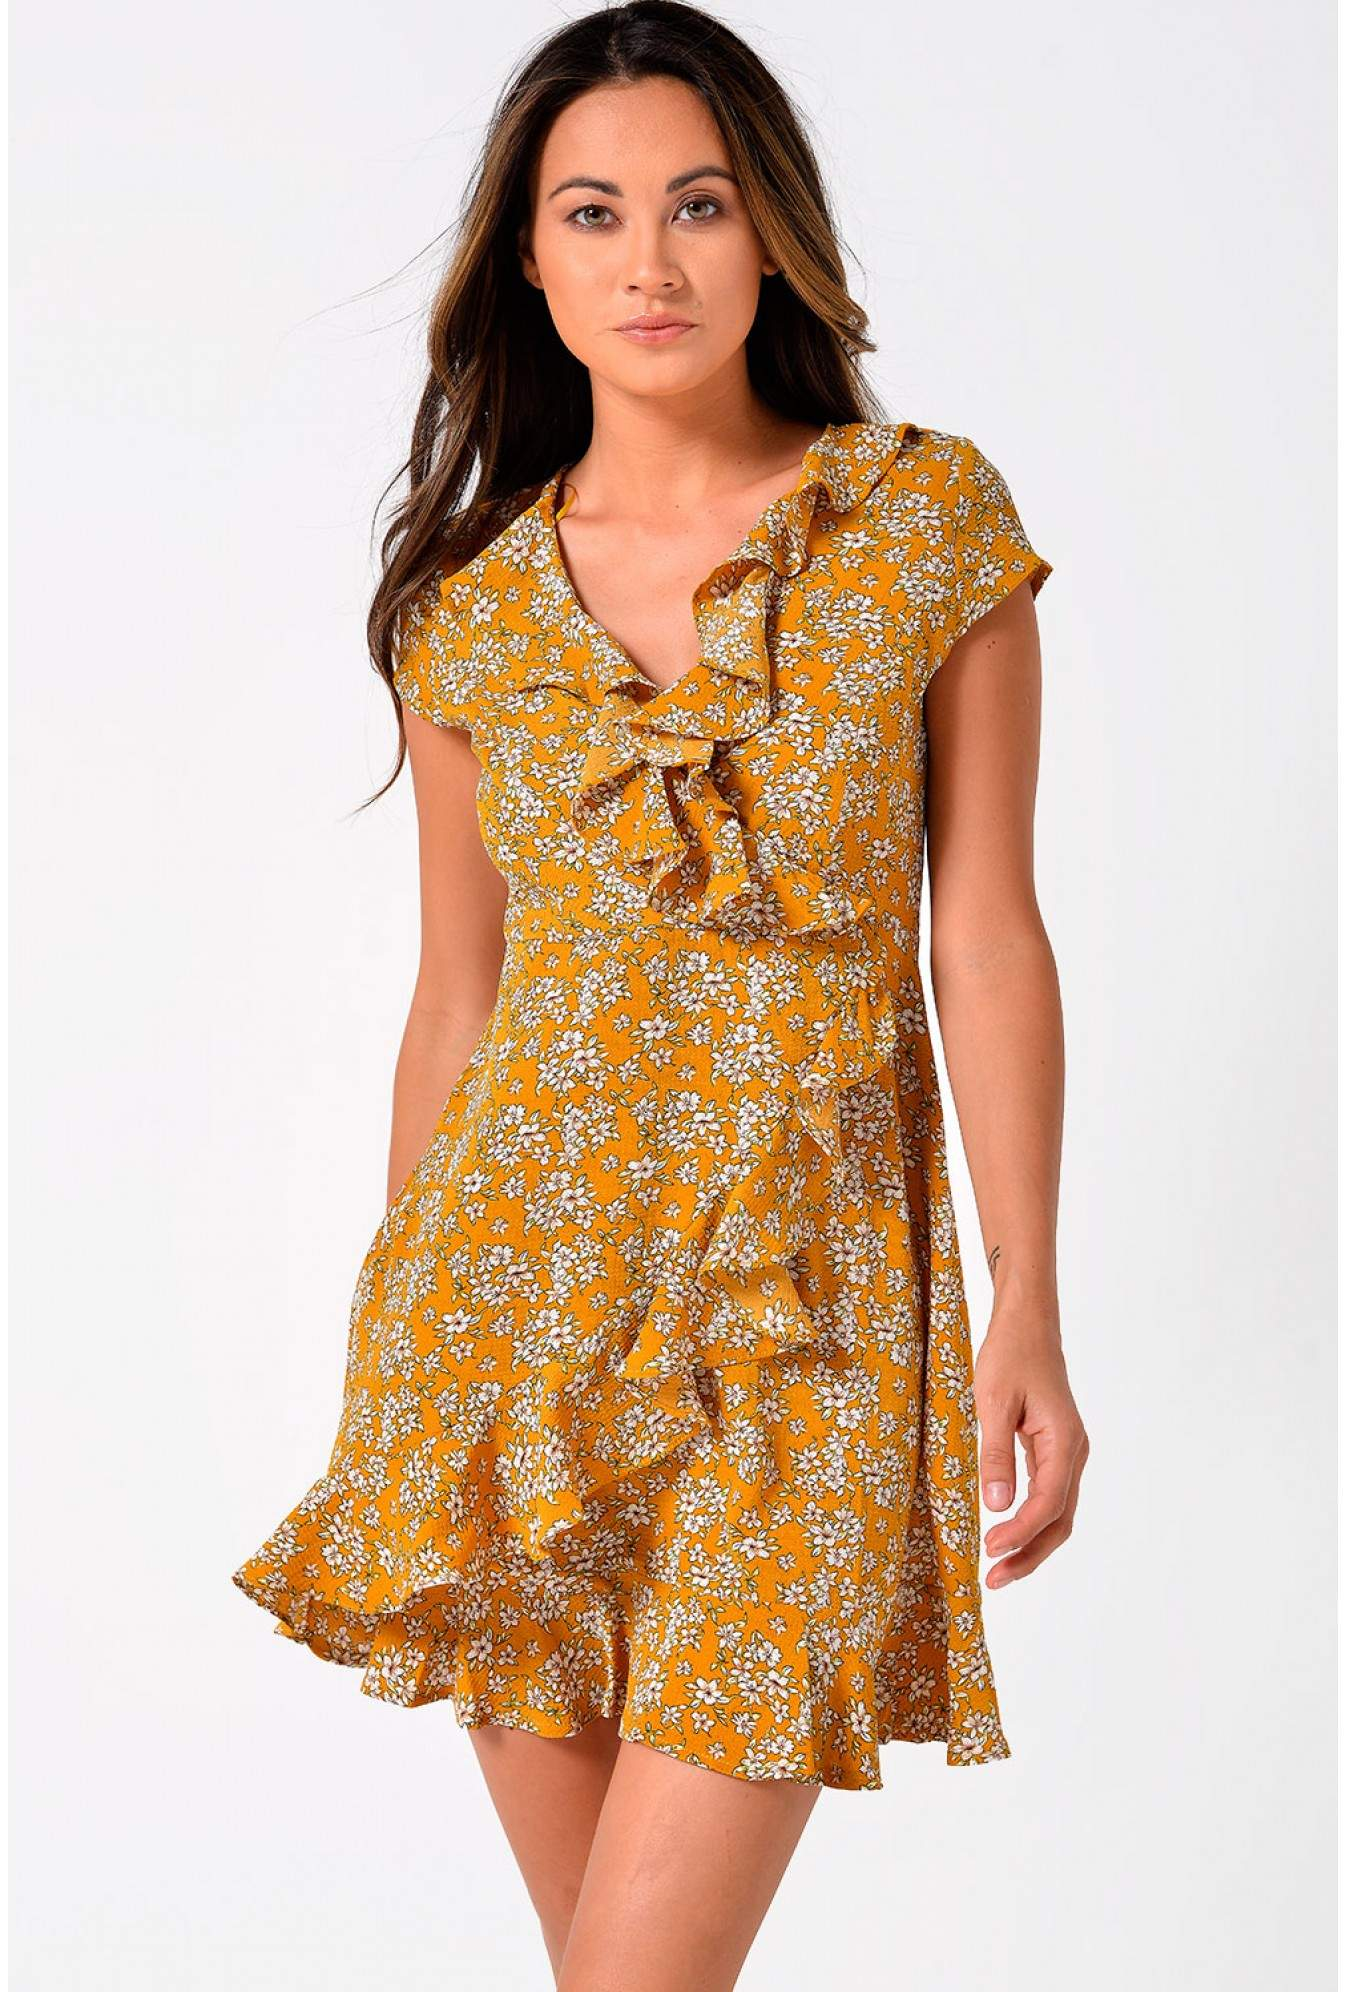 756c71bc7528 More Views. Lilly Floral Print Short Dress With Frill Hem in Mustard